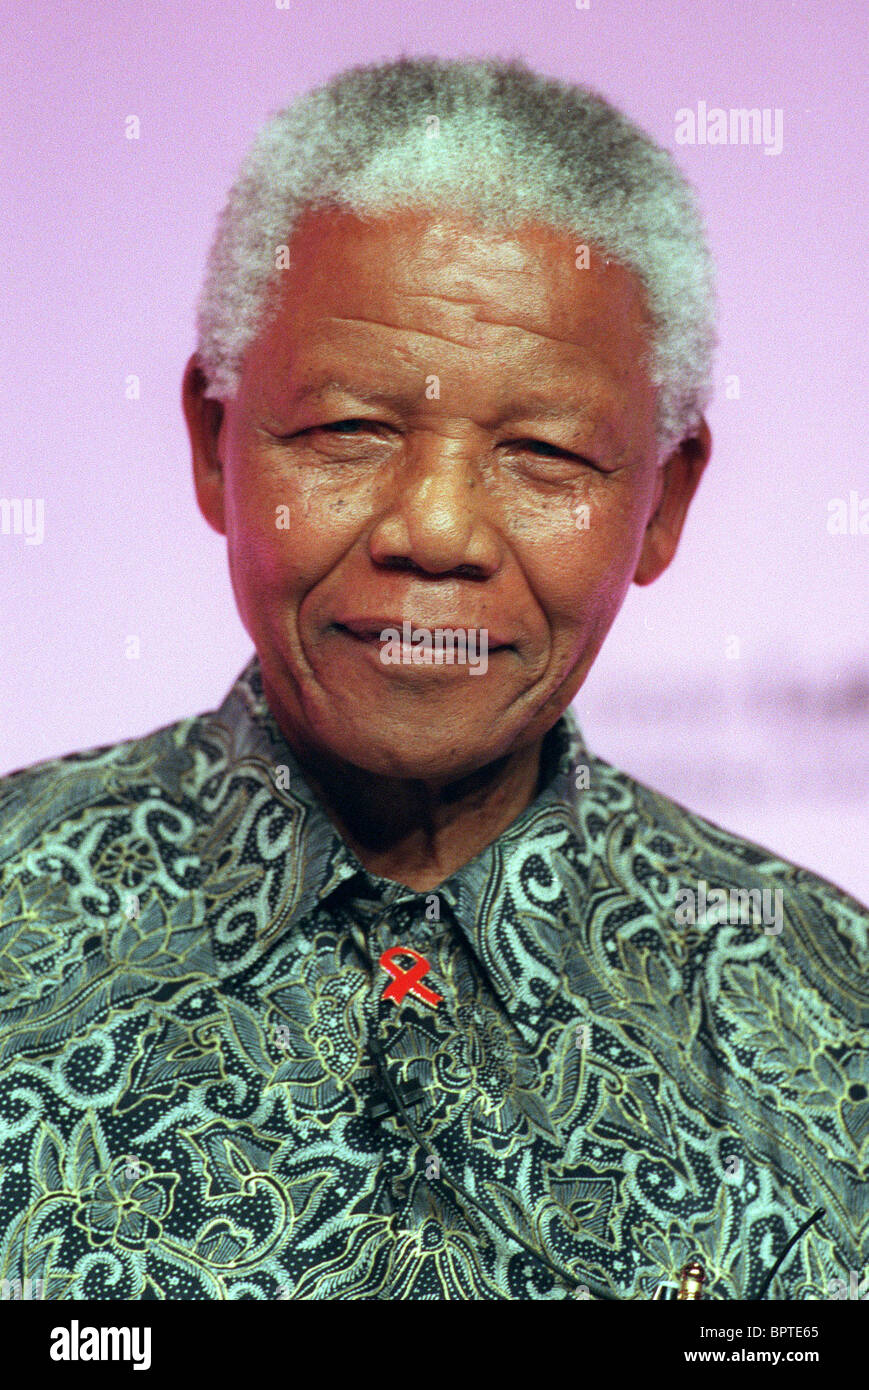 NELSON MANDELA FORMER PRES. OF SOUTH AFRICA 24 September 2000 BRIGHTON LABOUR PARTY CONFERENCE 2000 - Stock Image